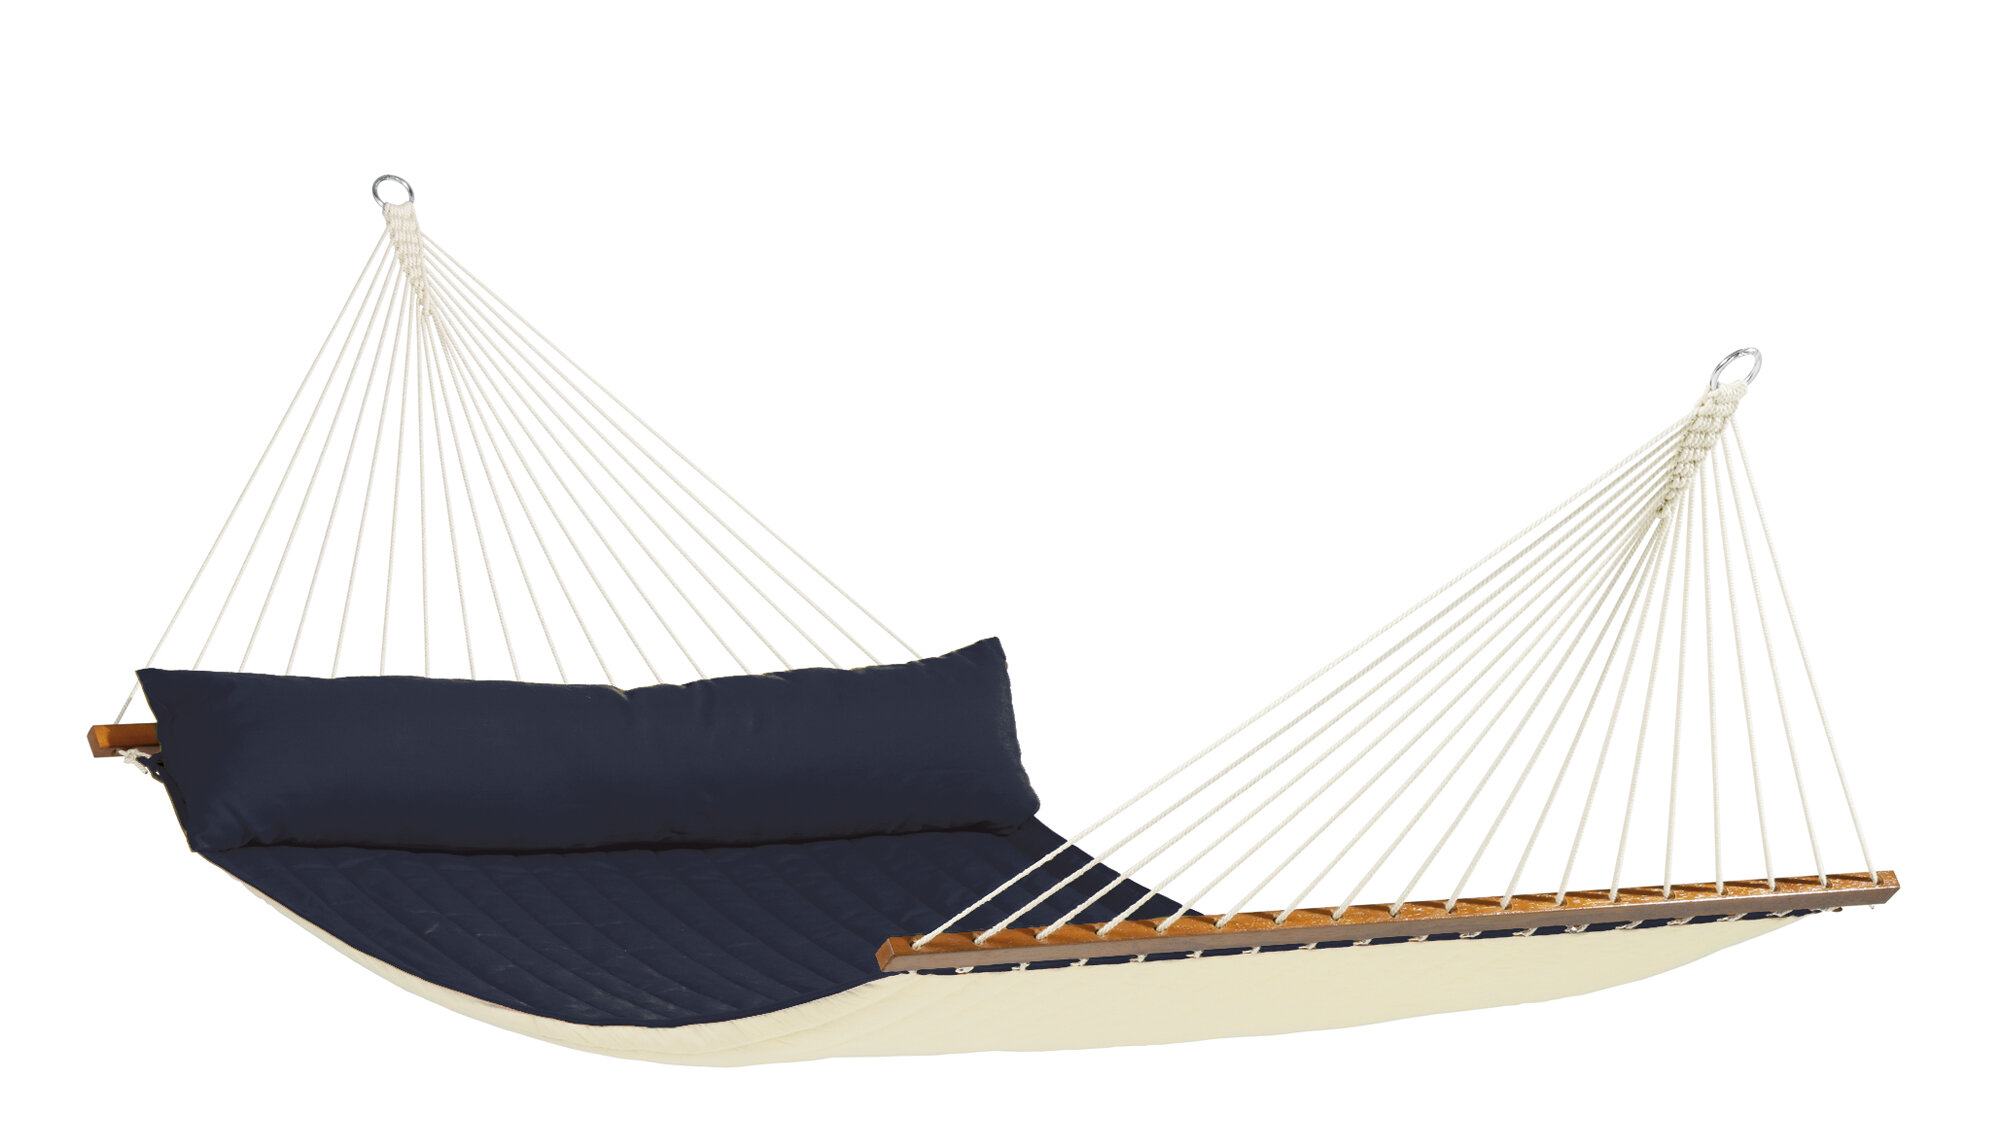 colombia siesta colombian la hammock traditional from quality artwork pin